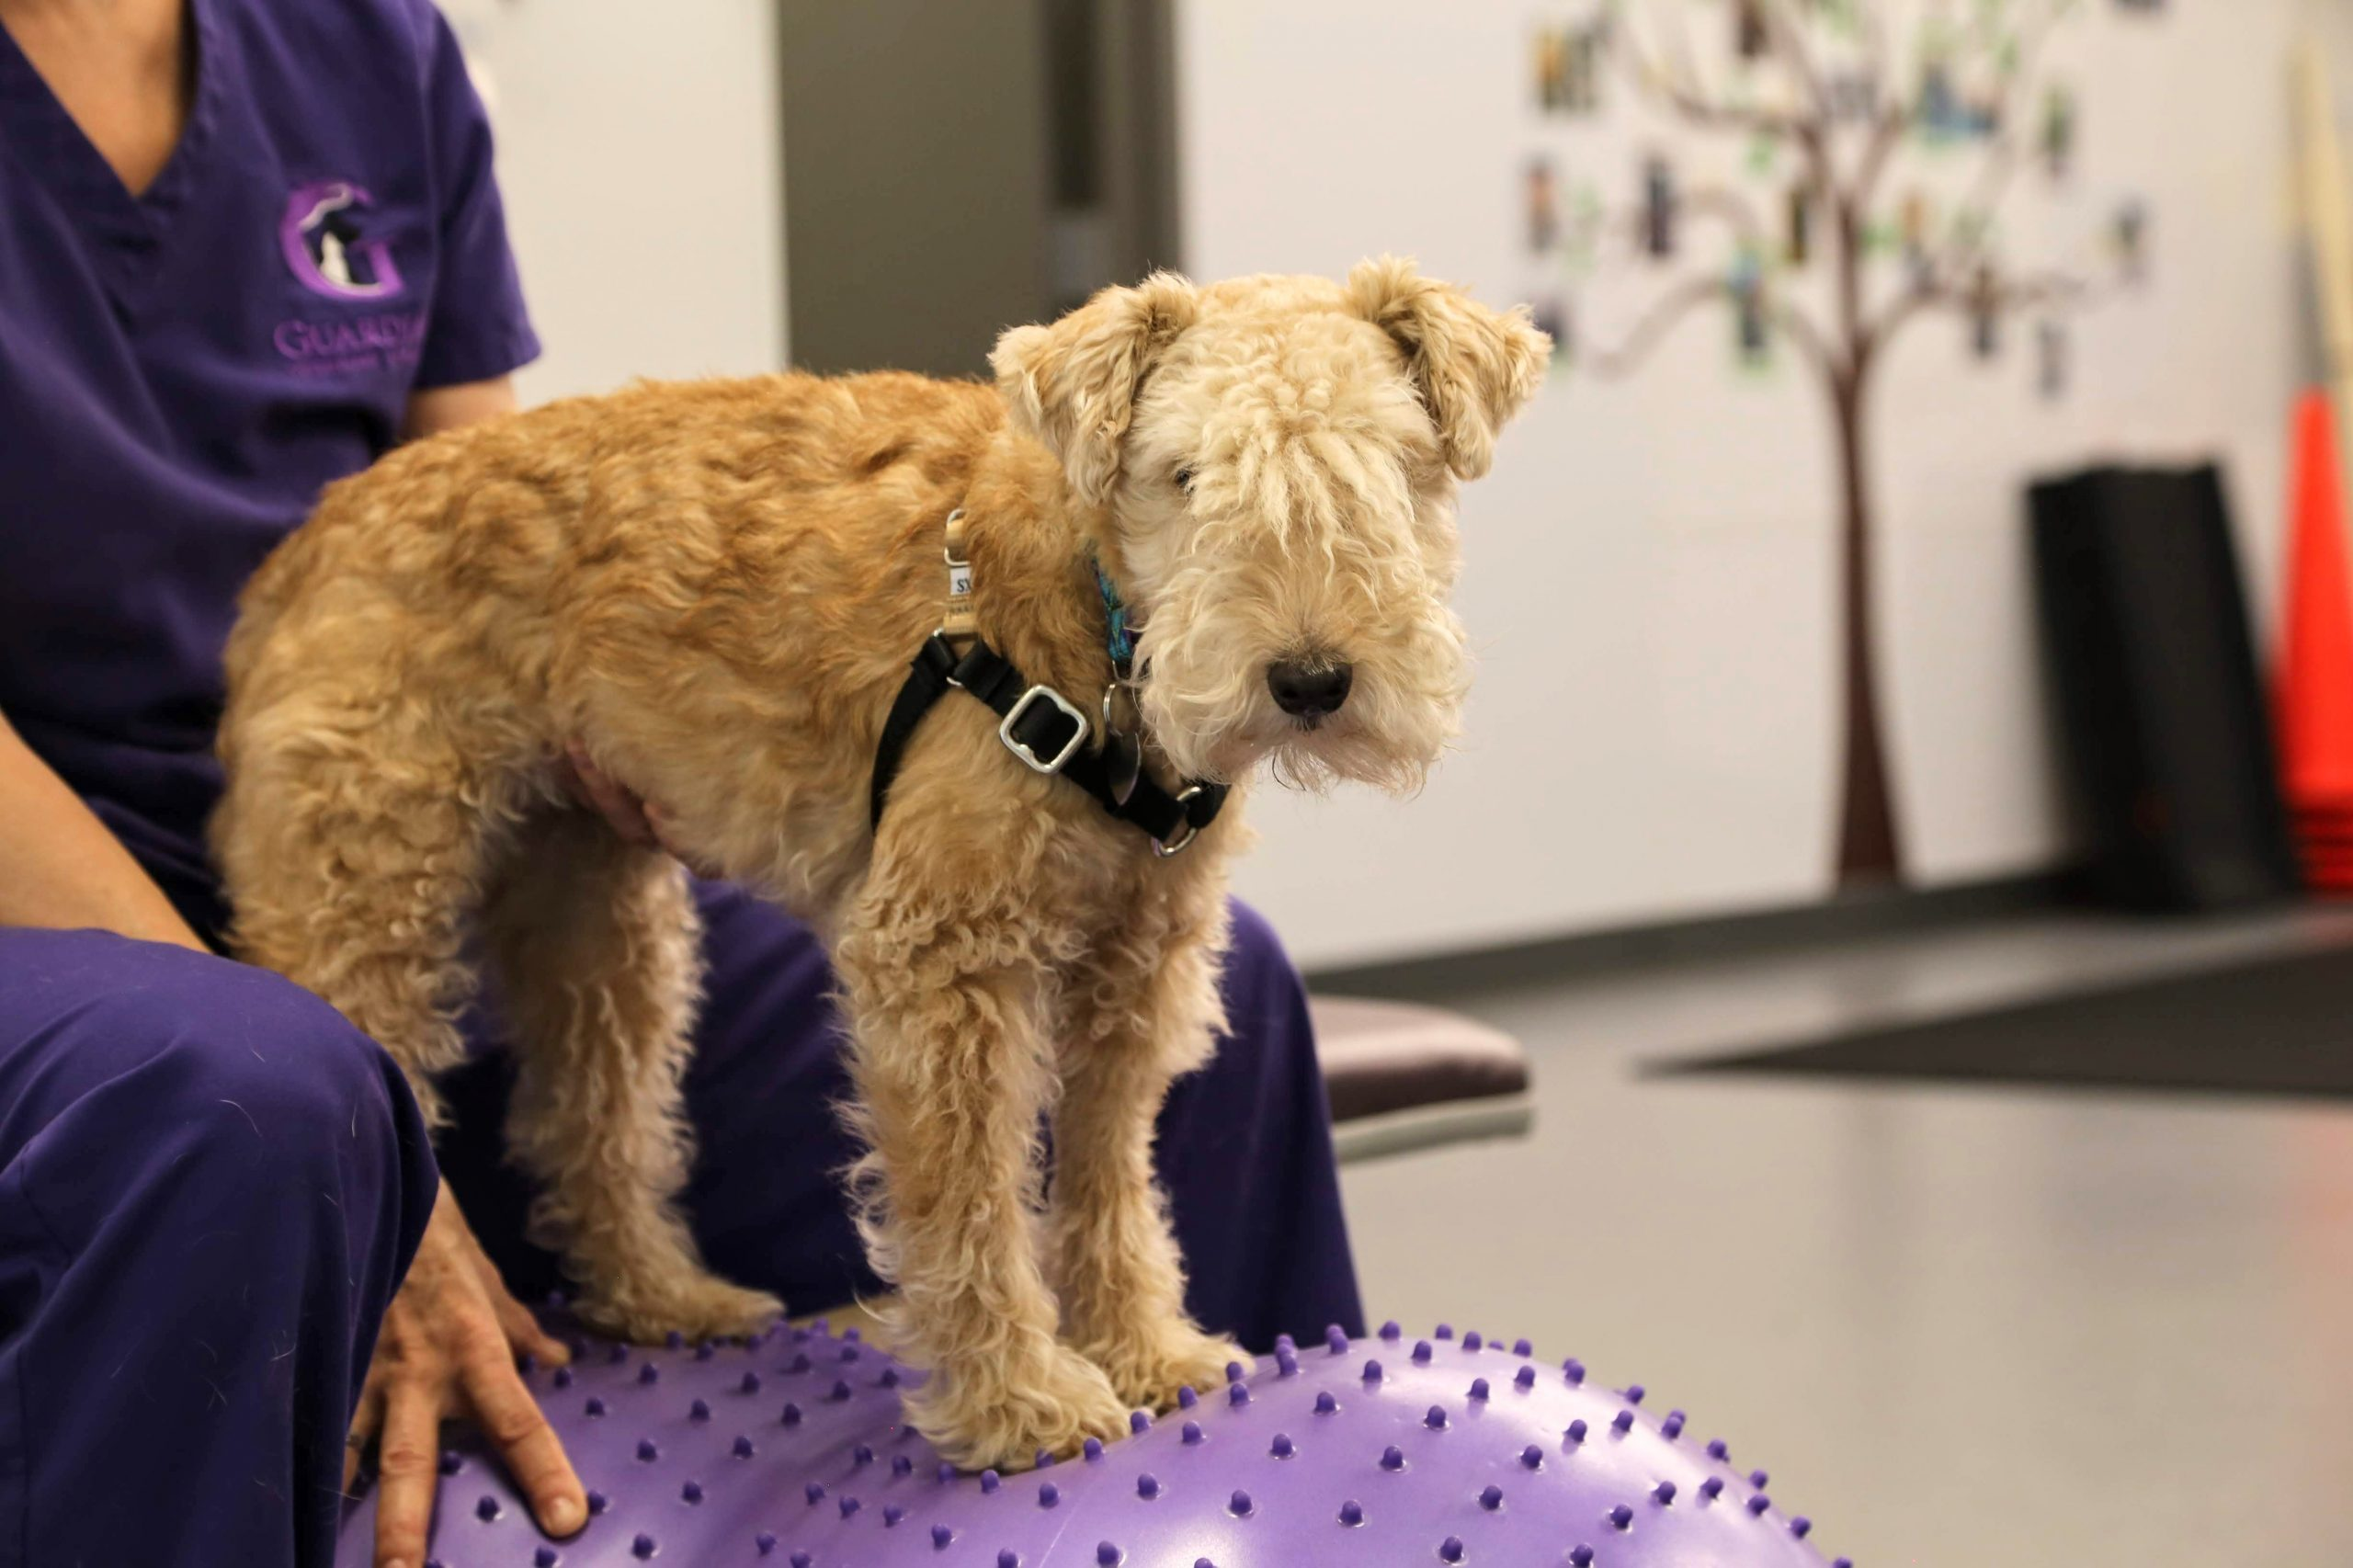 dog standing on purple exercise ball